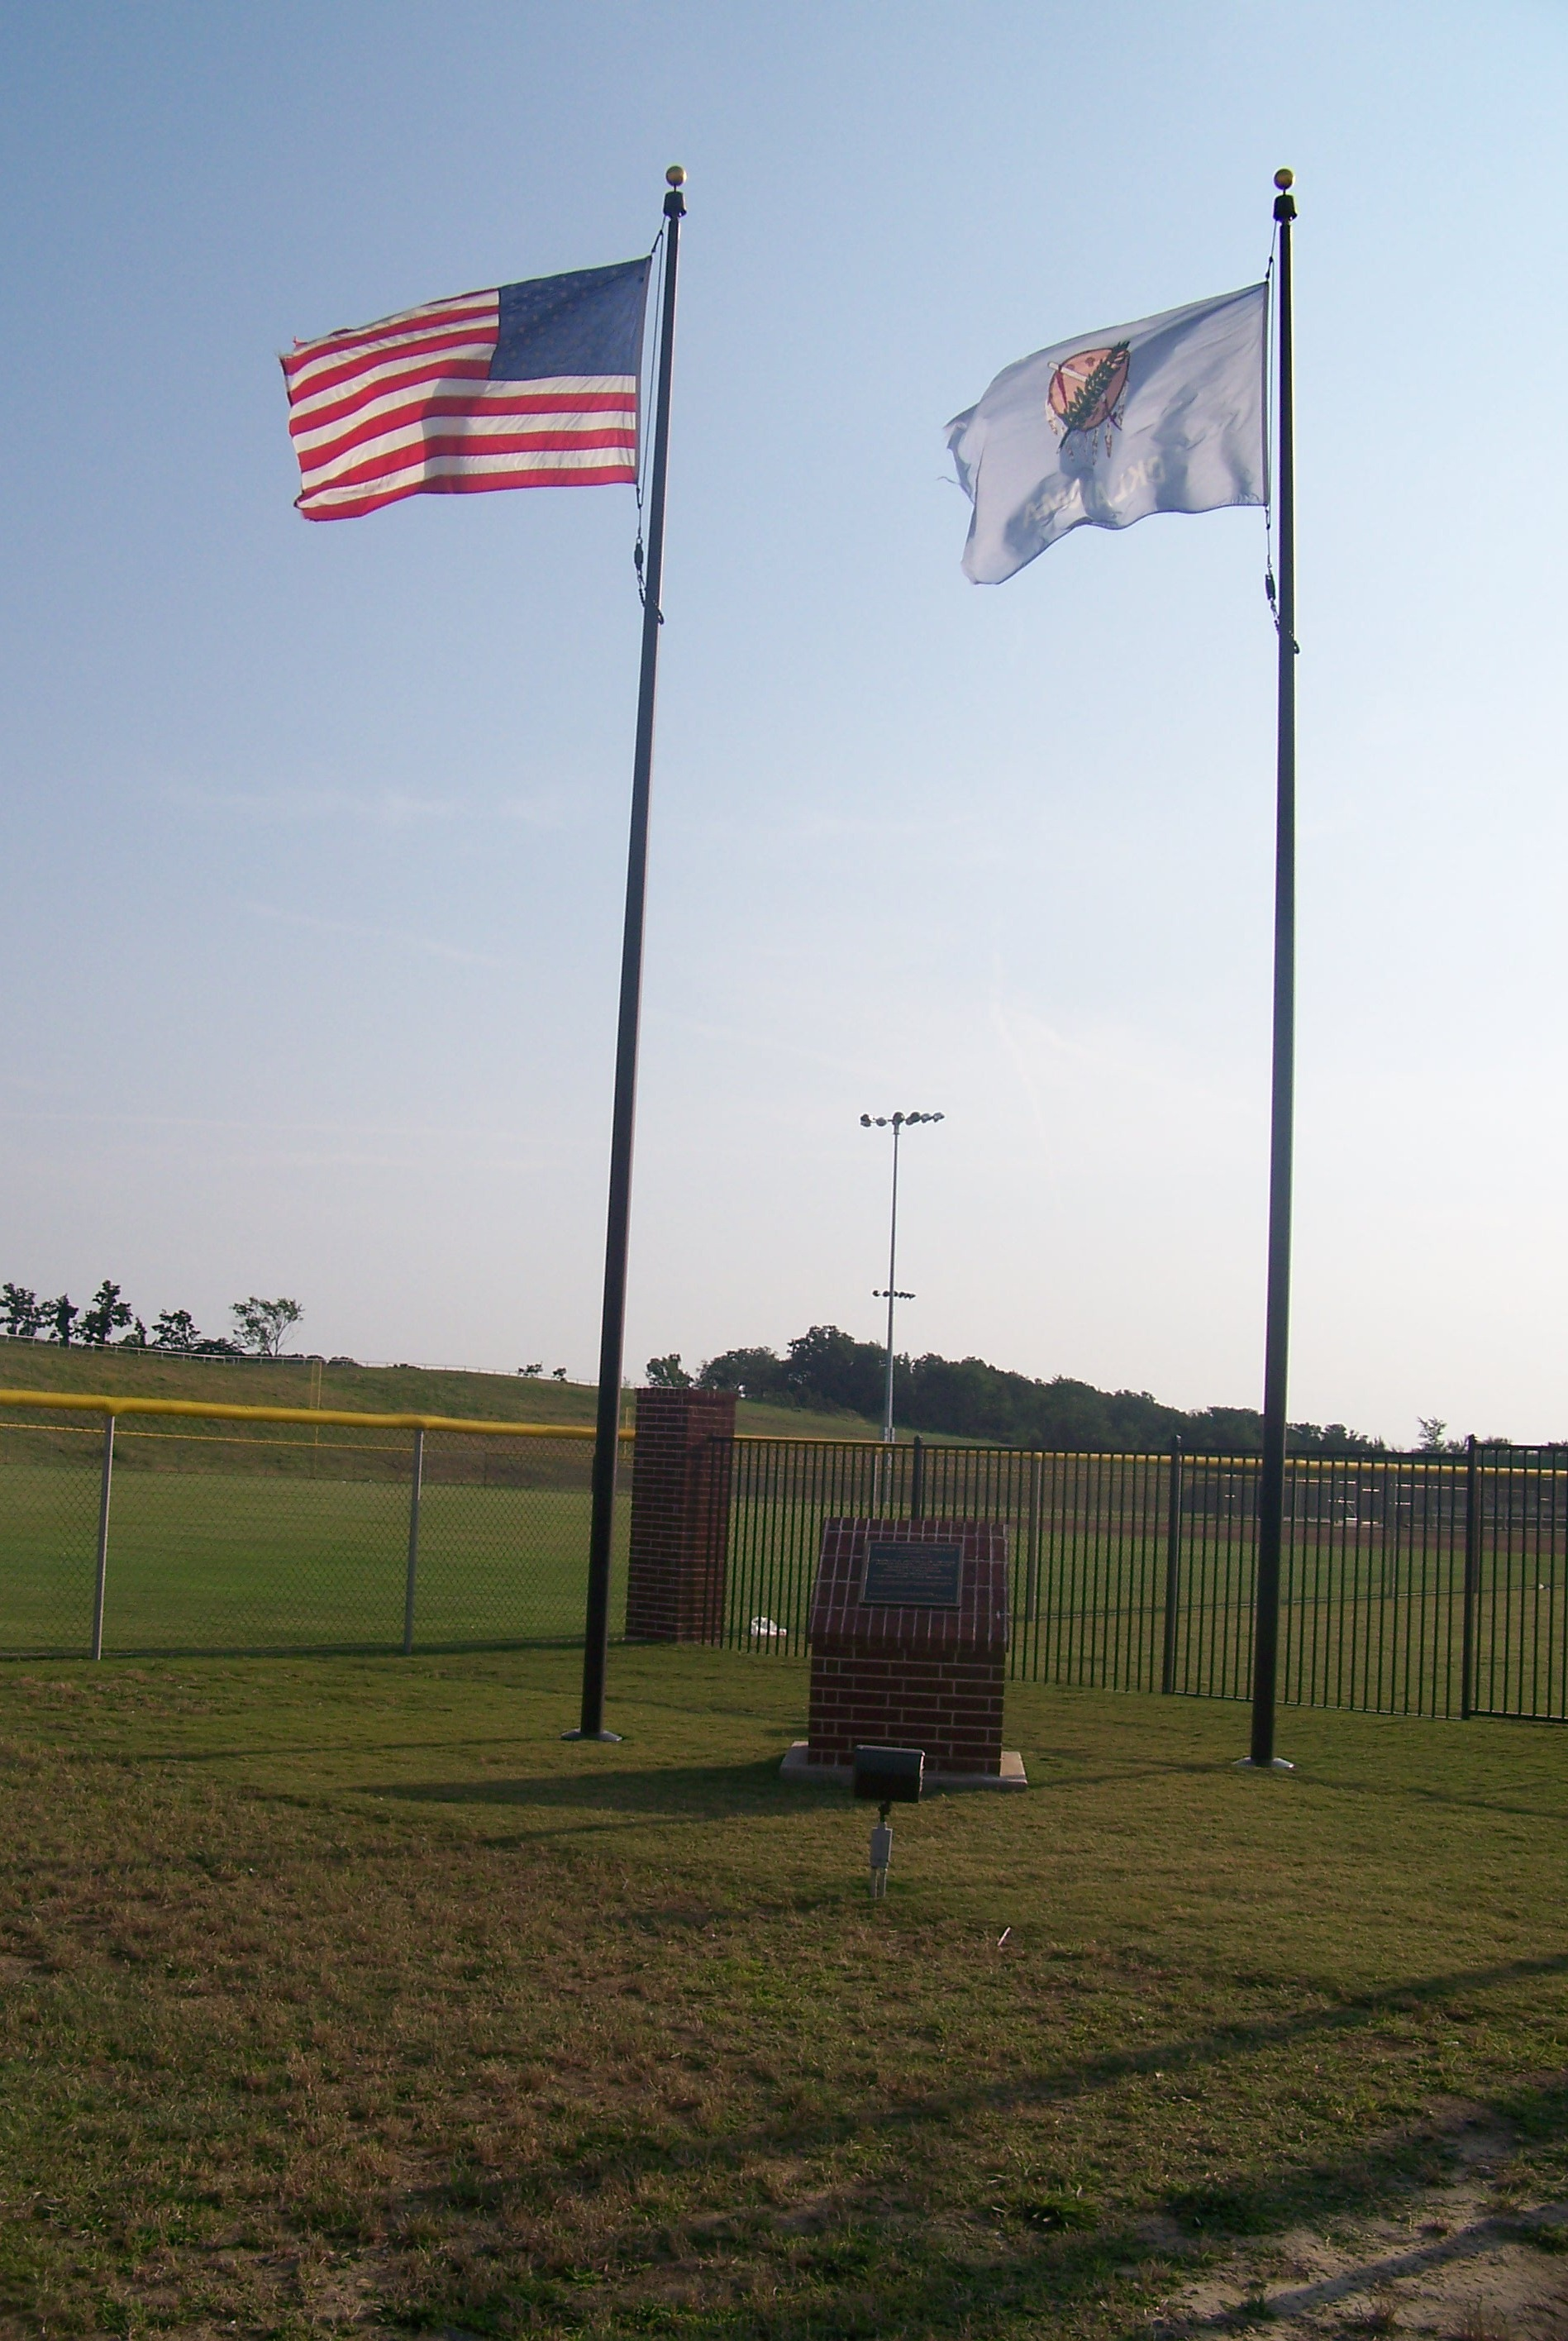 Flags and monument at the Atoka Sports Complex